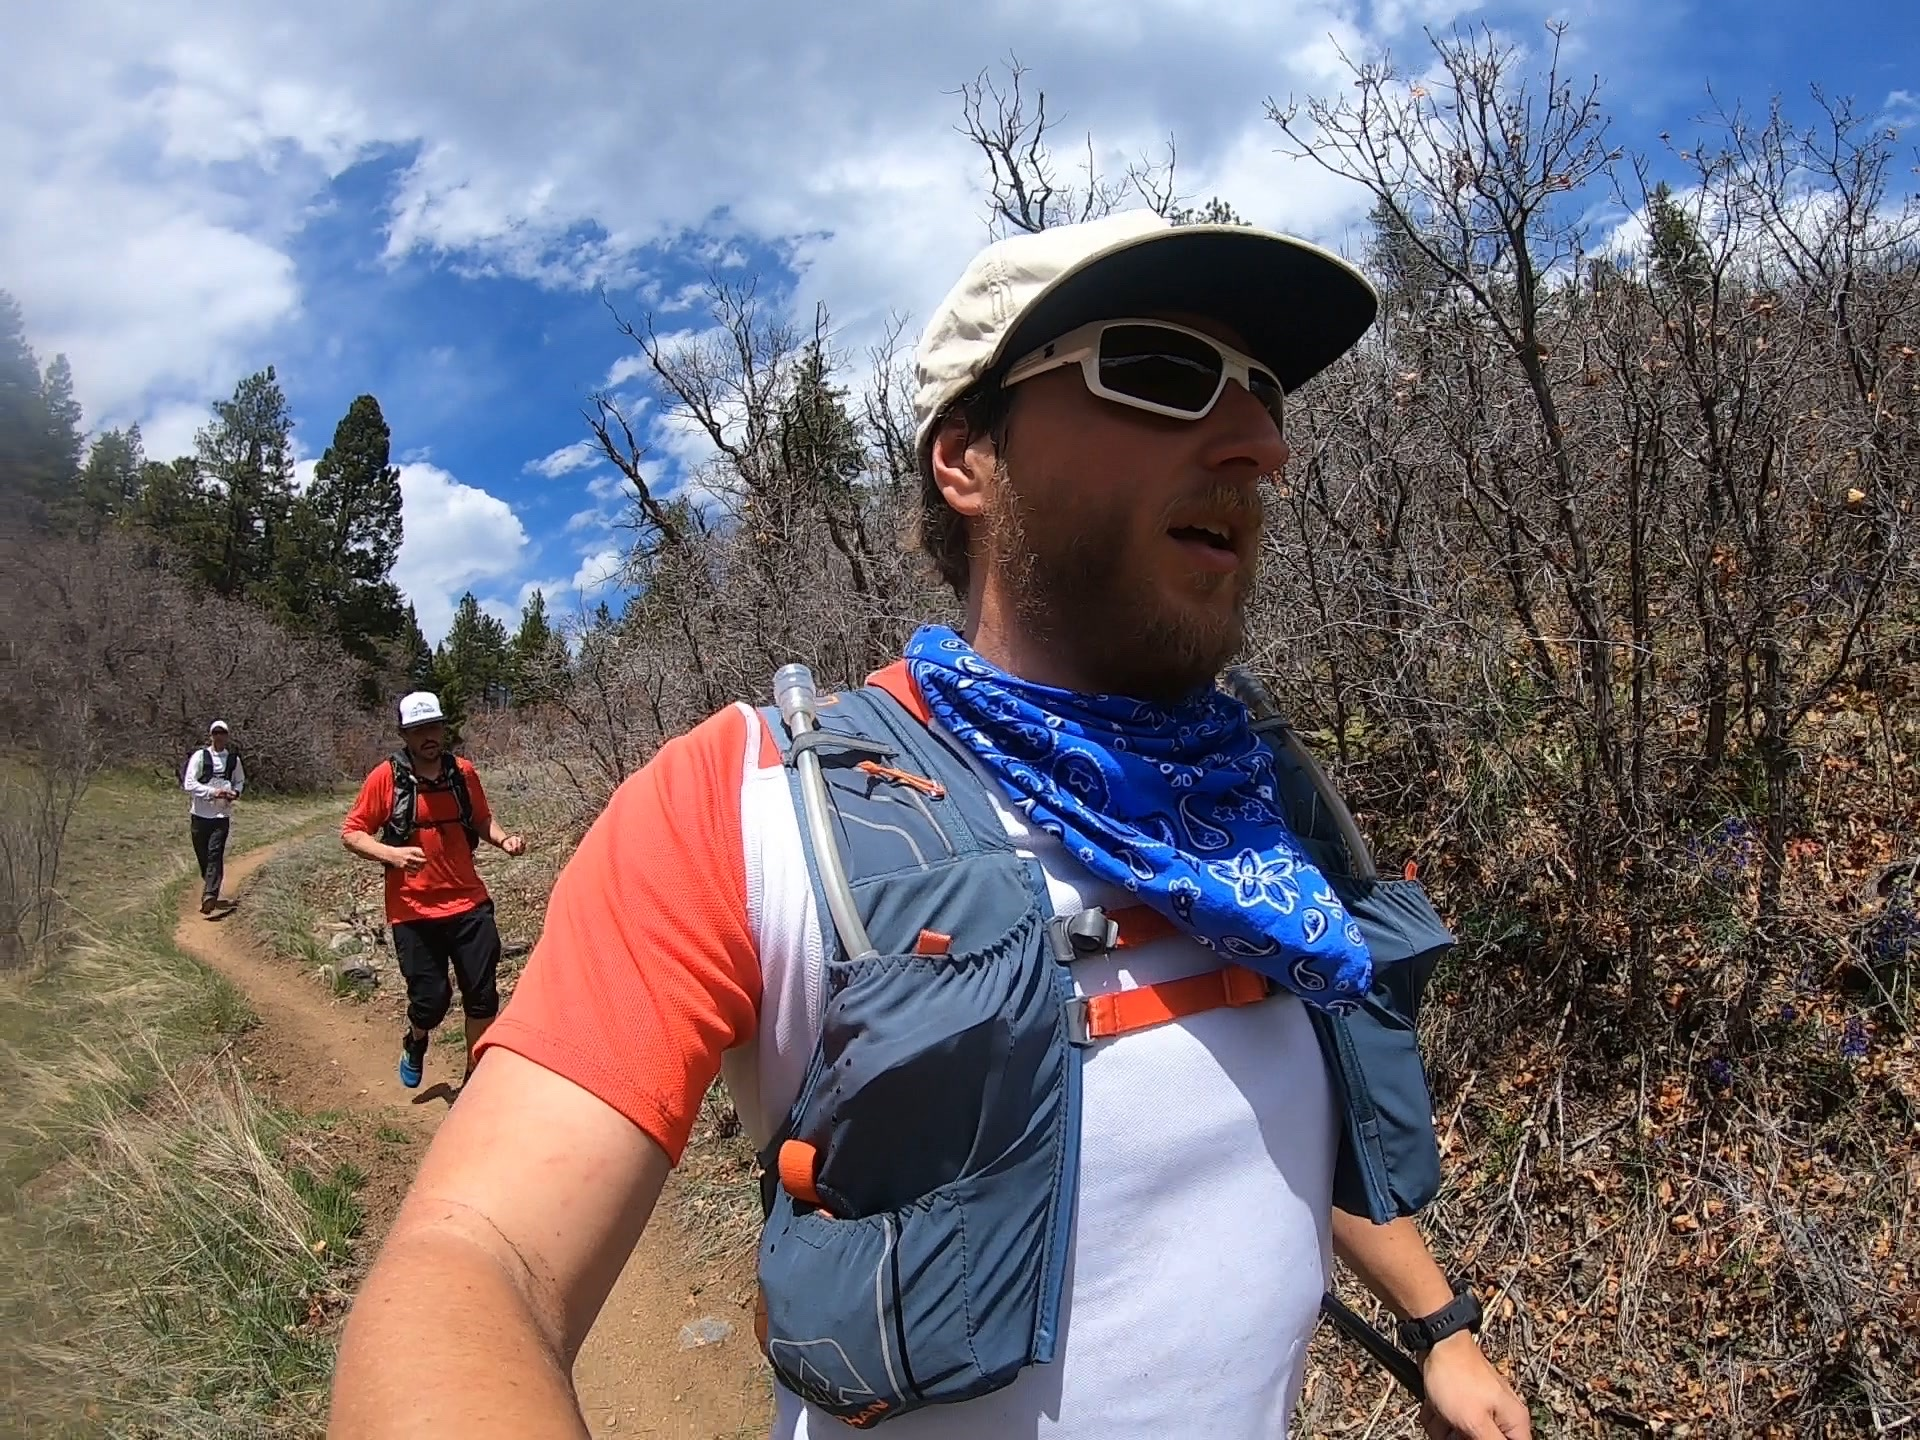 Adventure, Challenge, Community on the trails